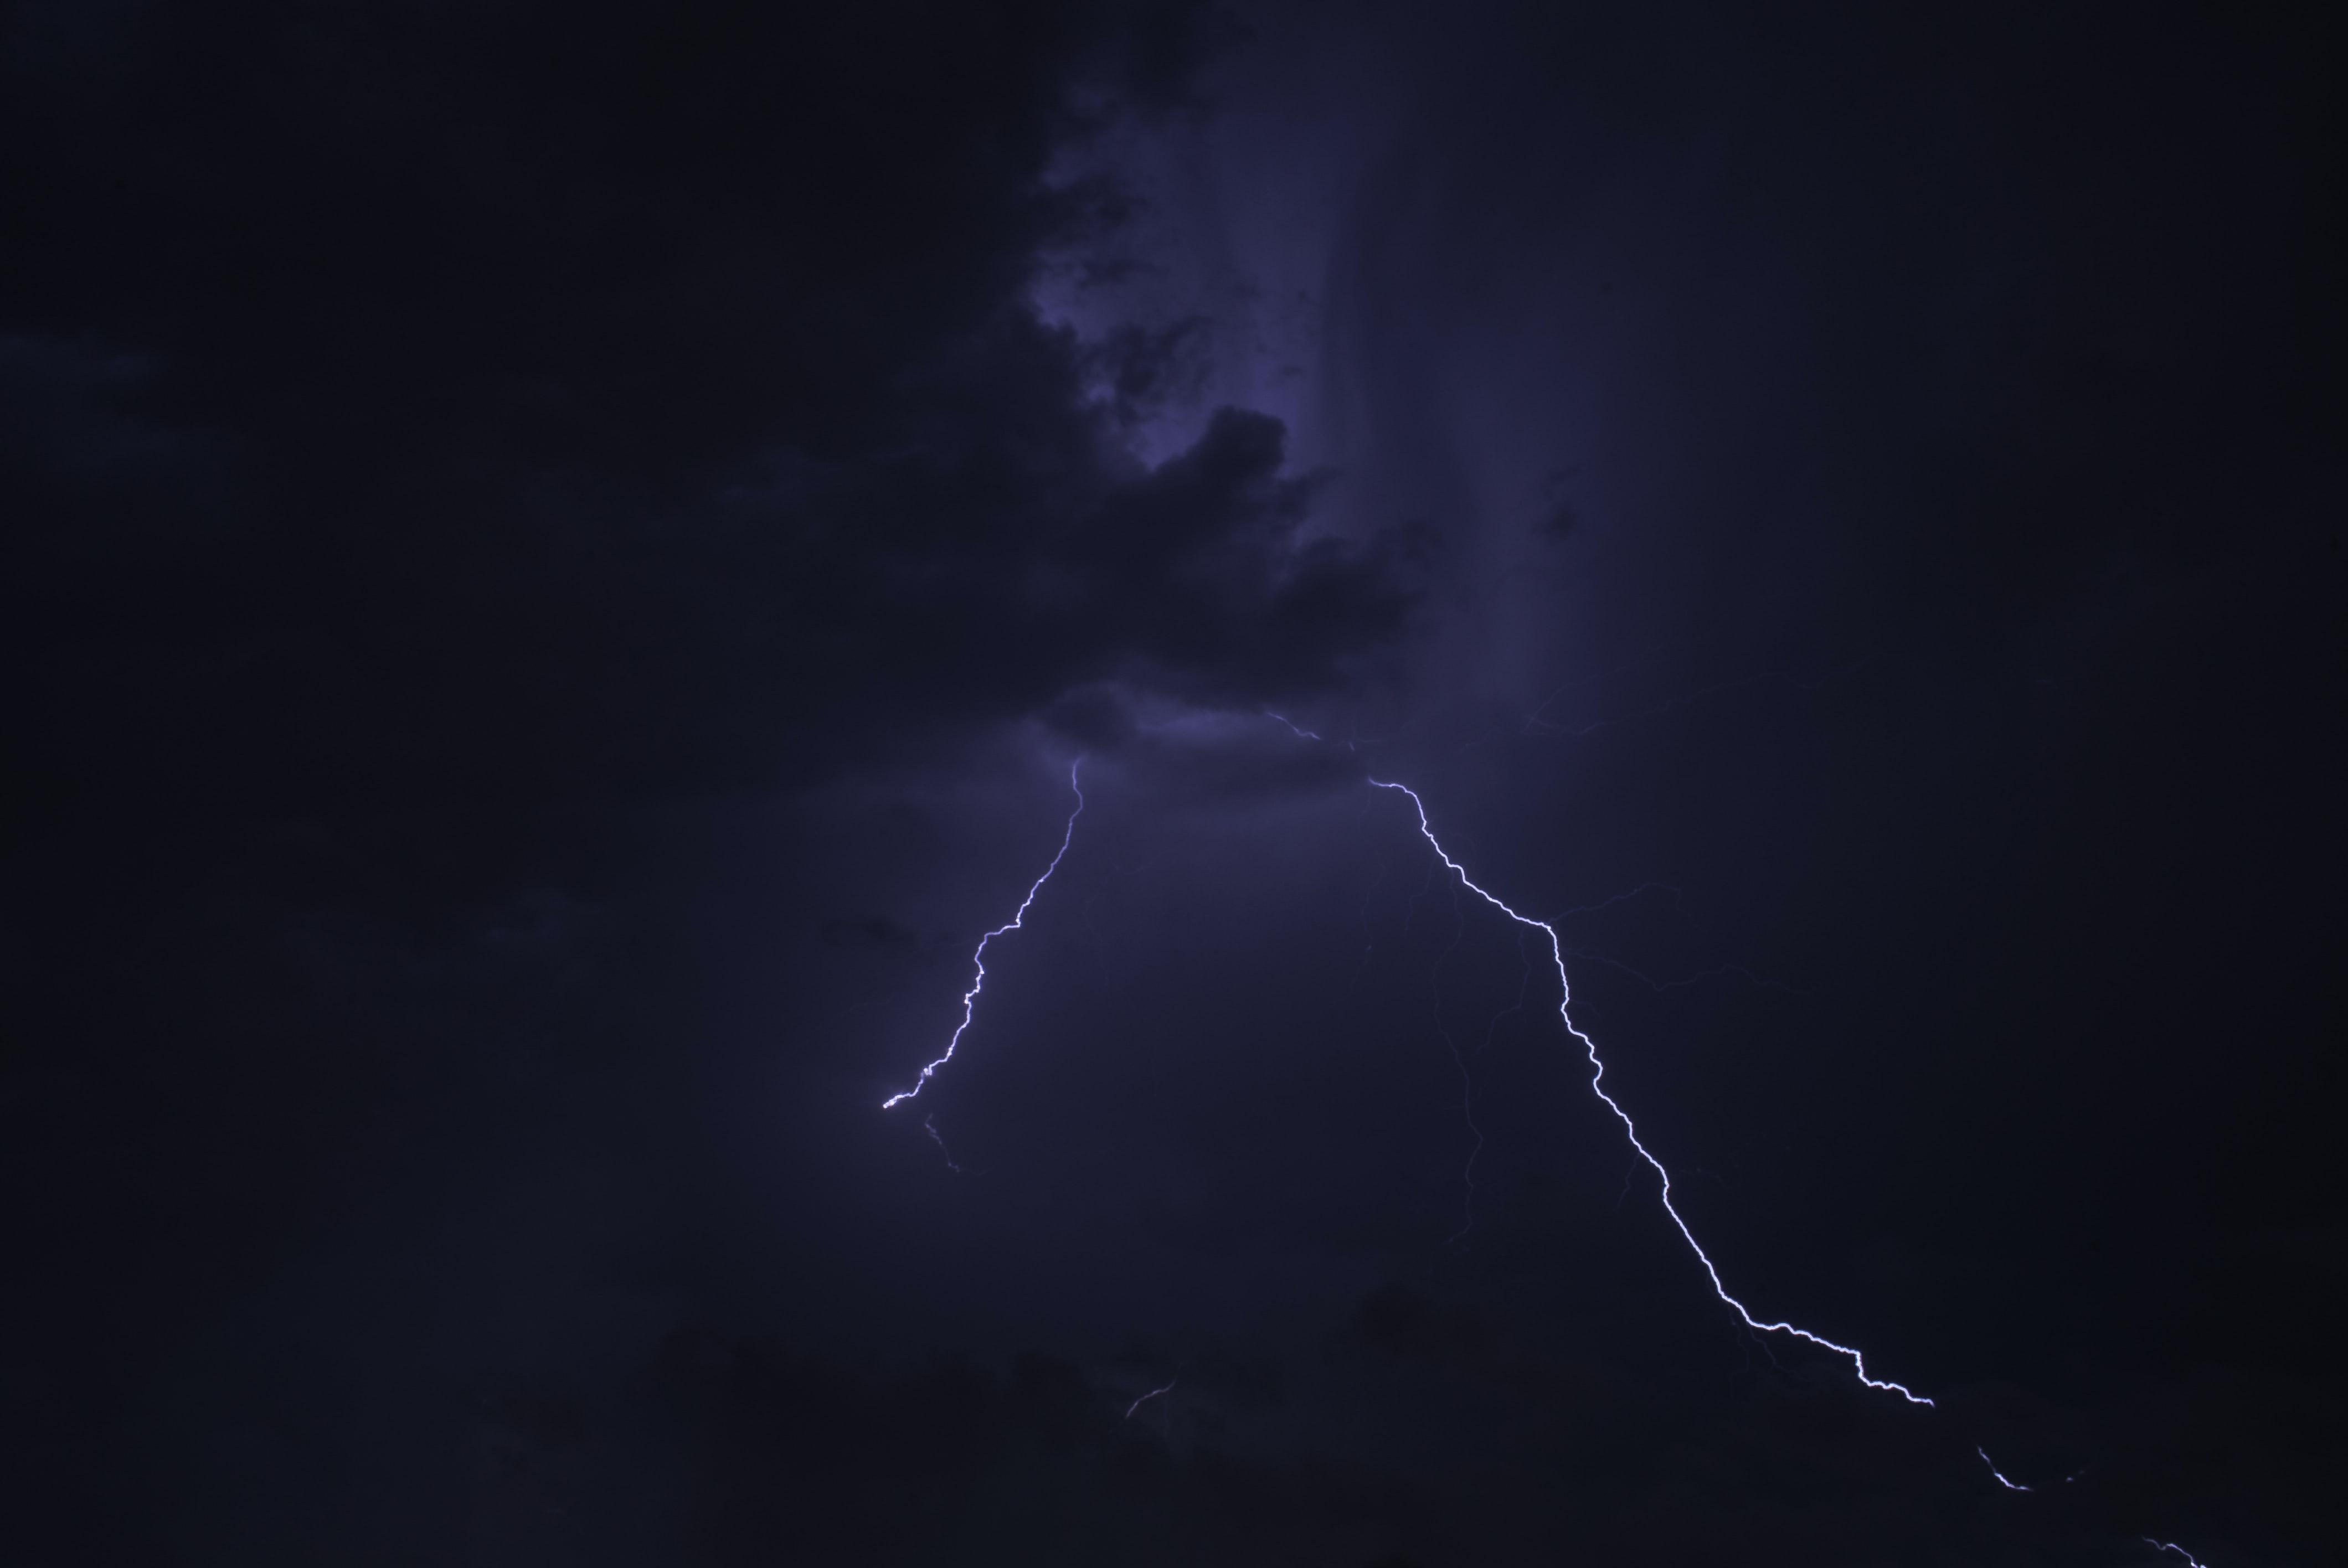 thunder with clouds at nighttime